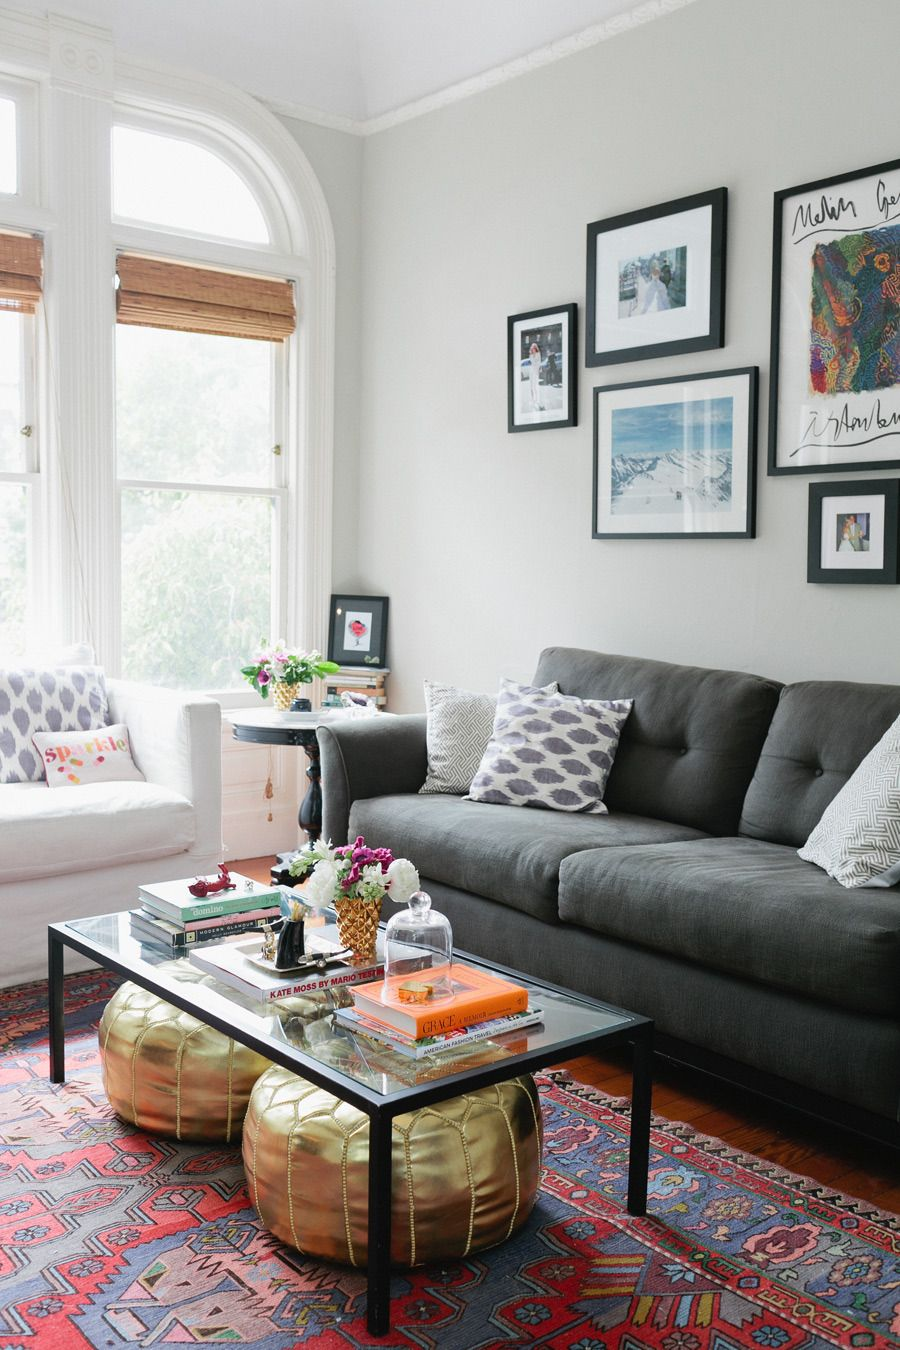 30 Eclectic Living Room Designs Eclectic Living Room Eclectic Living Room Design Living Room Inspiration